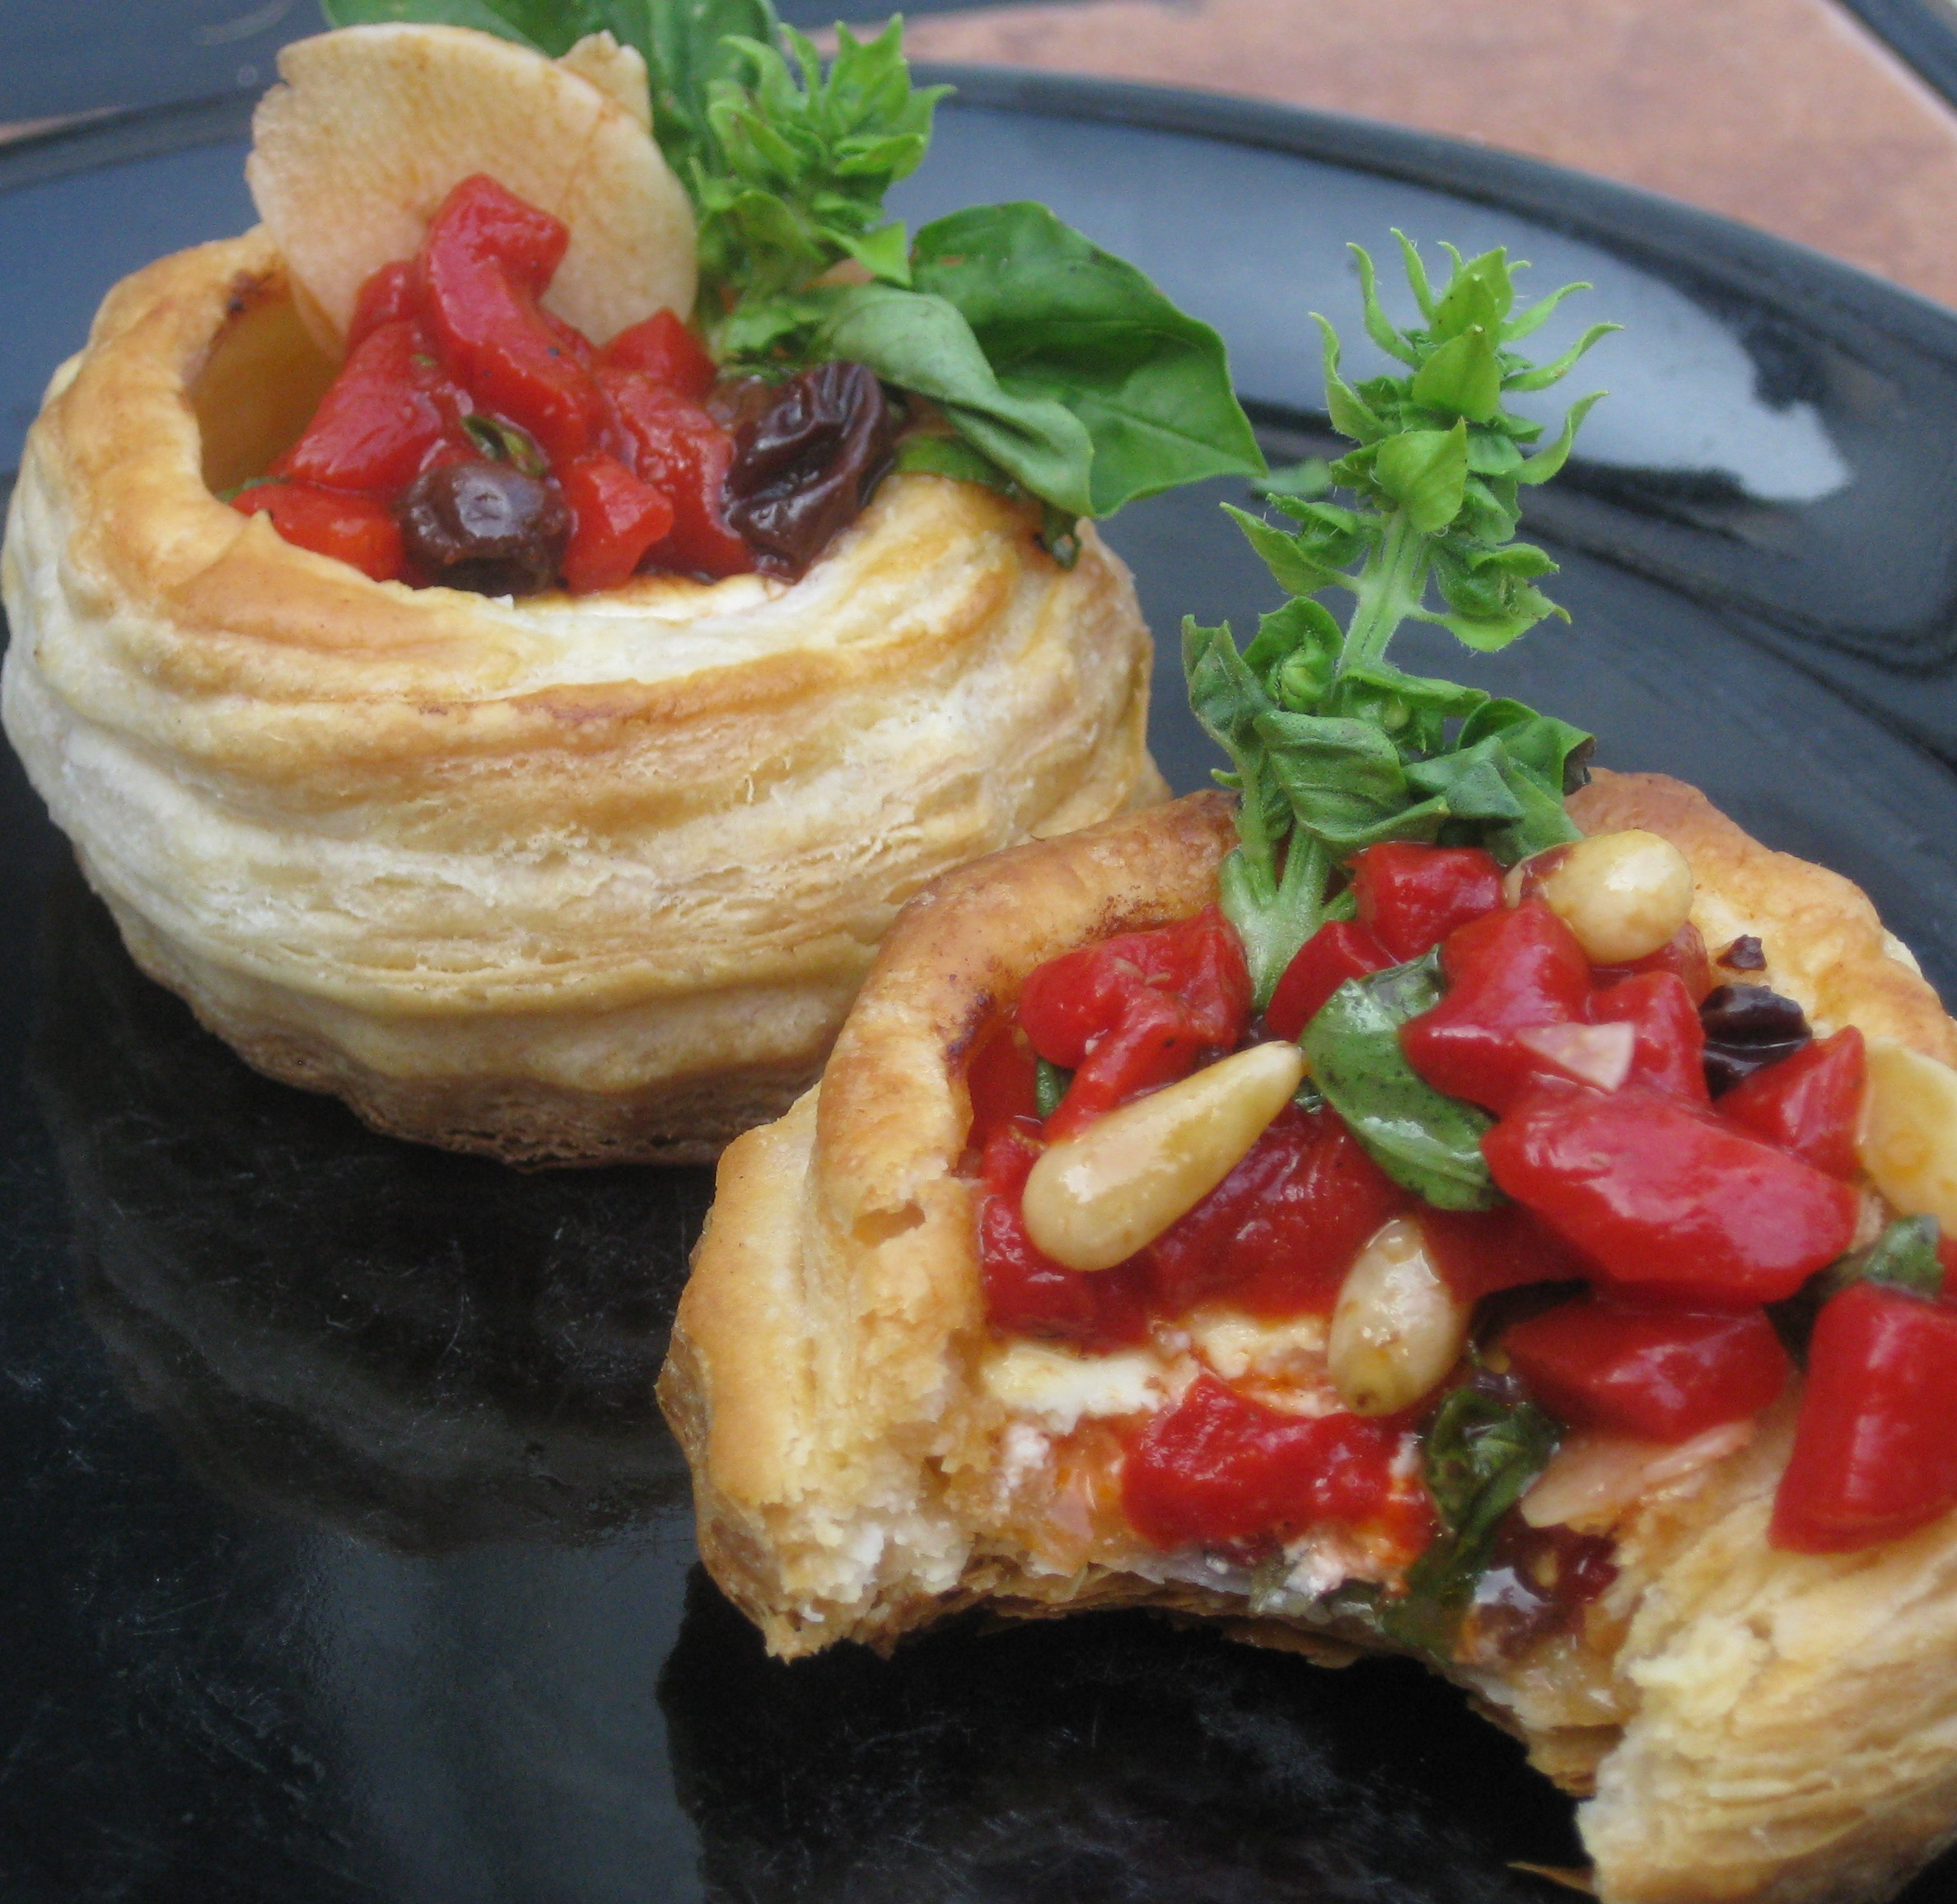 Goat cheese and red pepper compote puffs